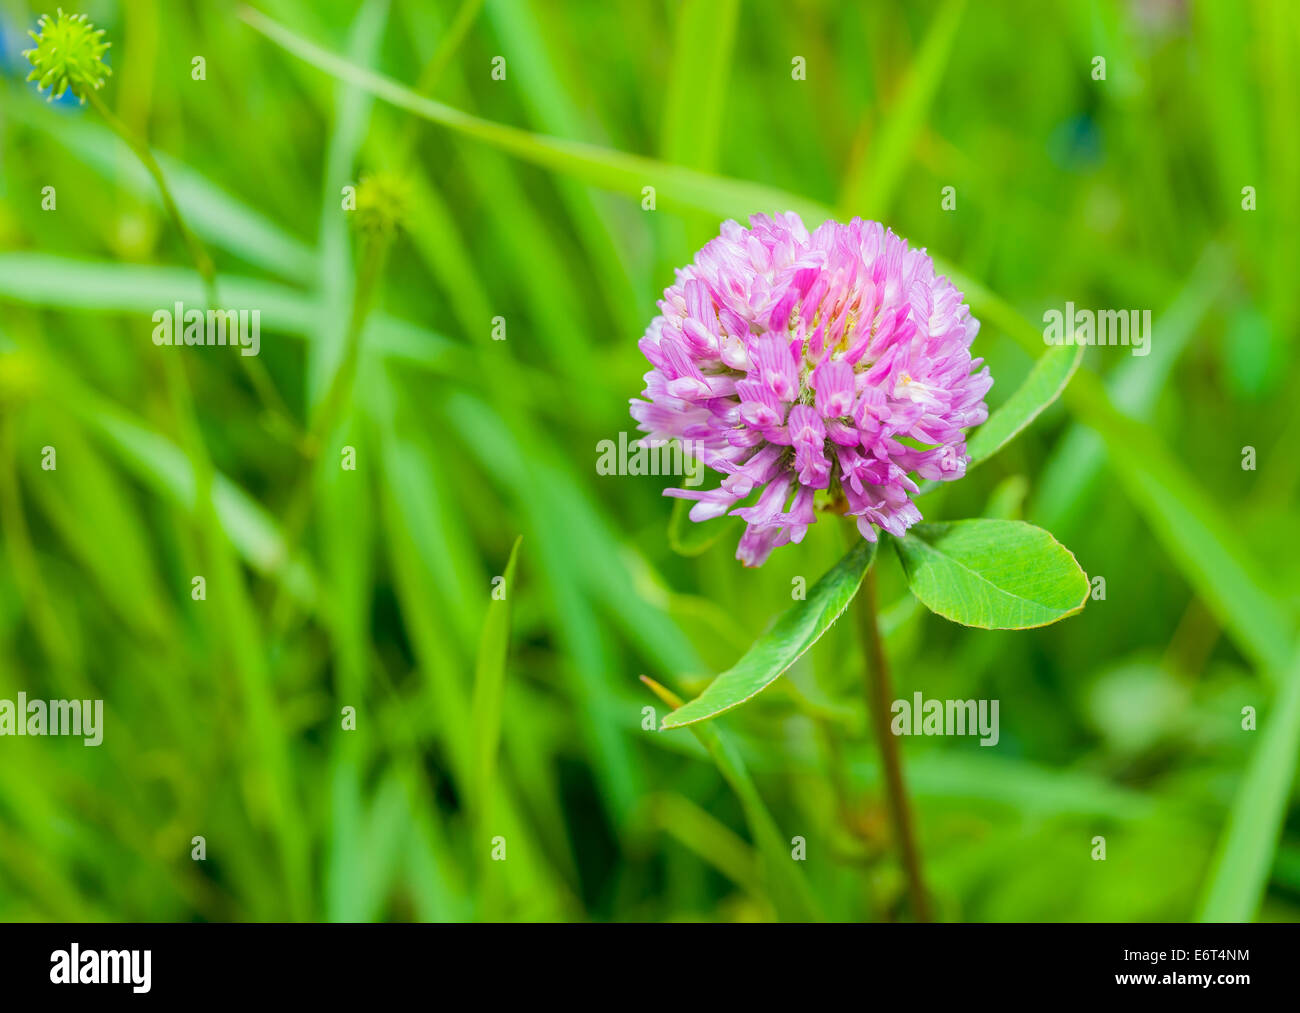 clover plants with flowers on blurred bacdkground Stock Photo